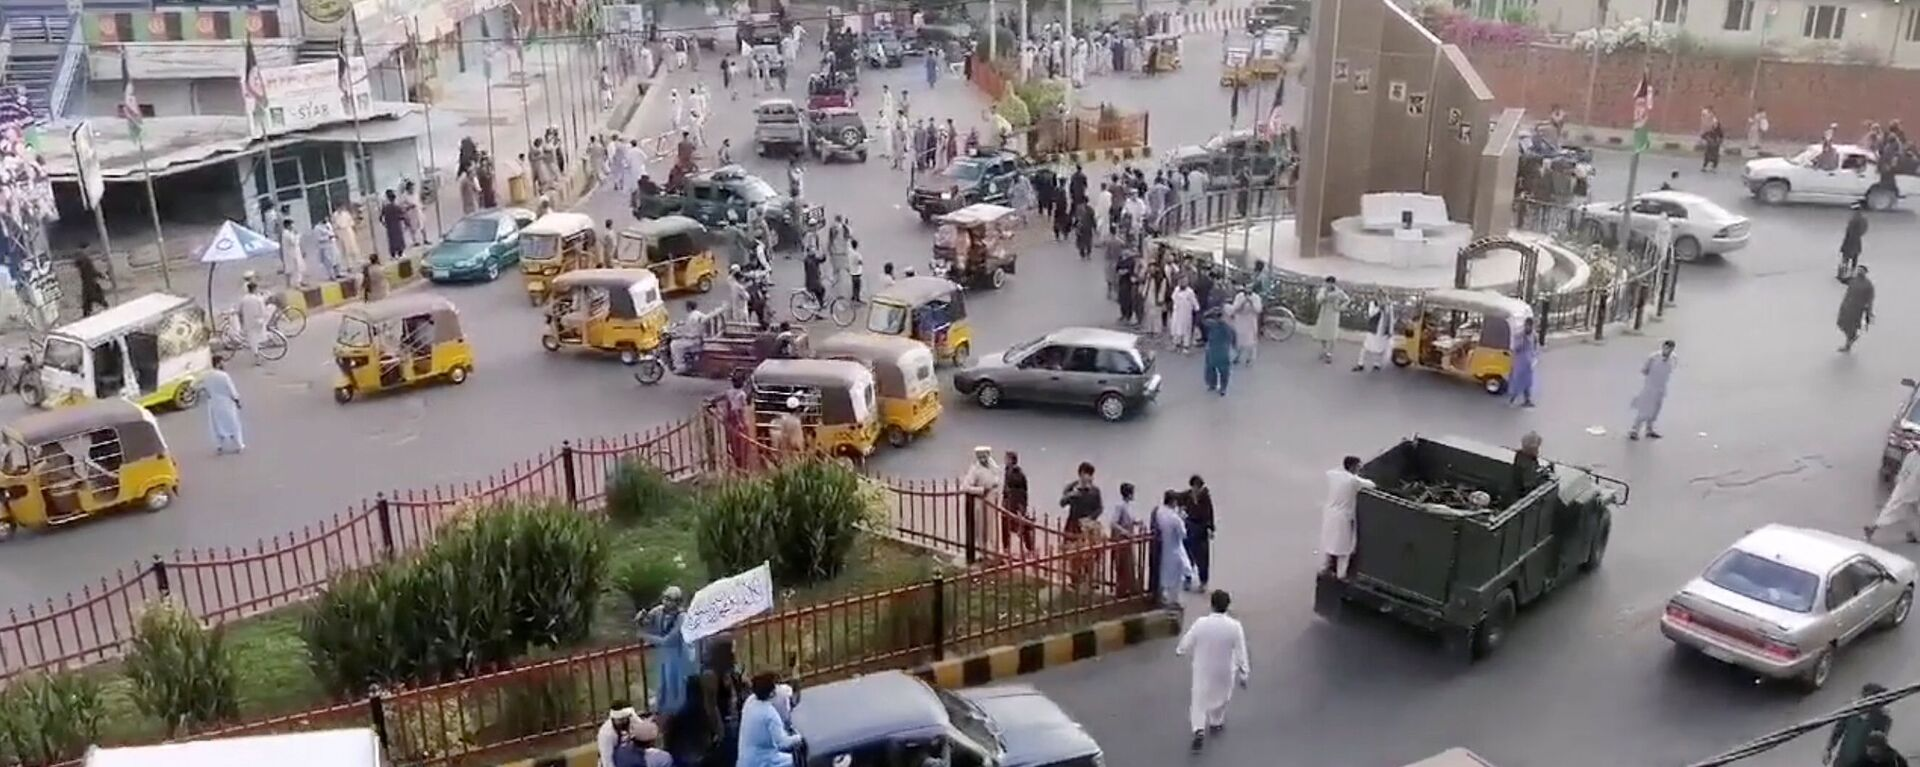 Taliban militants waving a Taliban flag on the back of a pickup truck drive past a crowded street at Pashtunistan Square area in Jalalabad, Afghanistan in this still image taken from social media video uploaded on August 15, 2021. Social media website/via REUTERS THIS IMAGE HAS BEEN SUPPLIED BY A THIRD PARTY. - Sputnik International, 1920